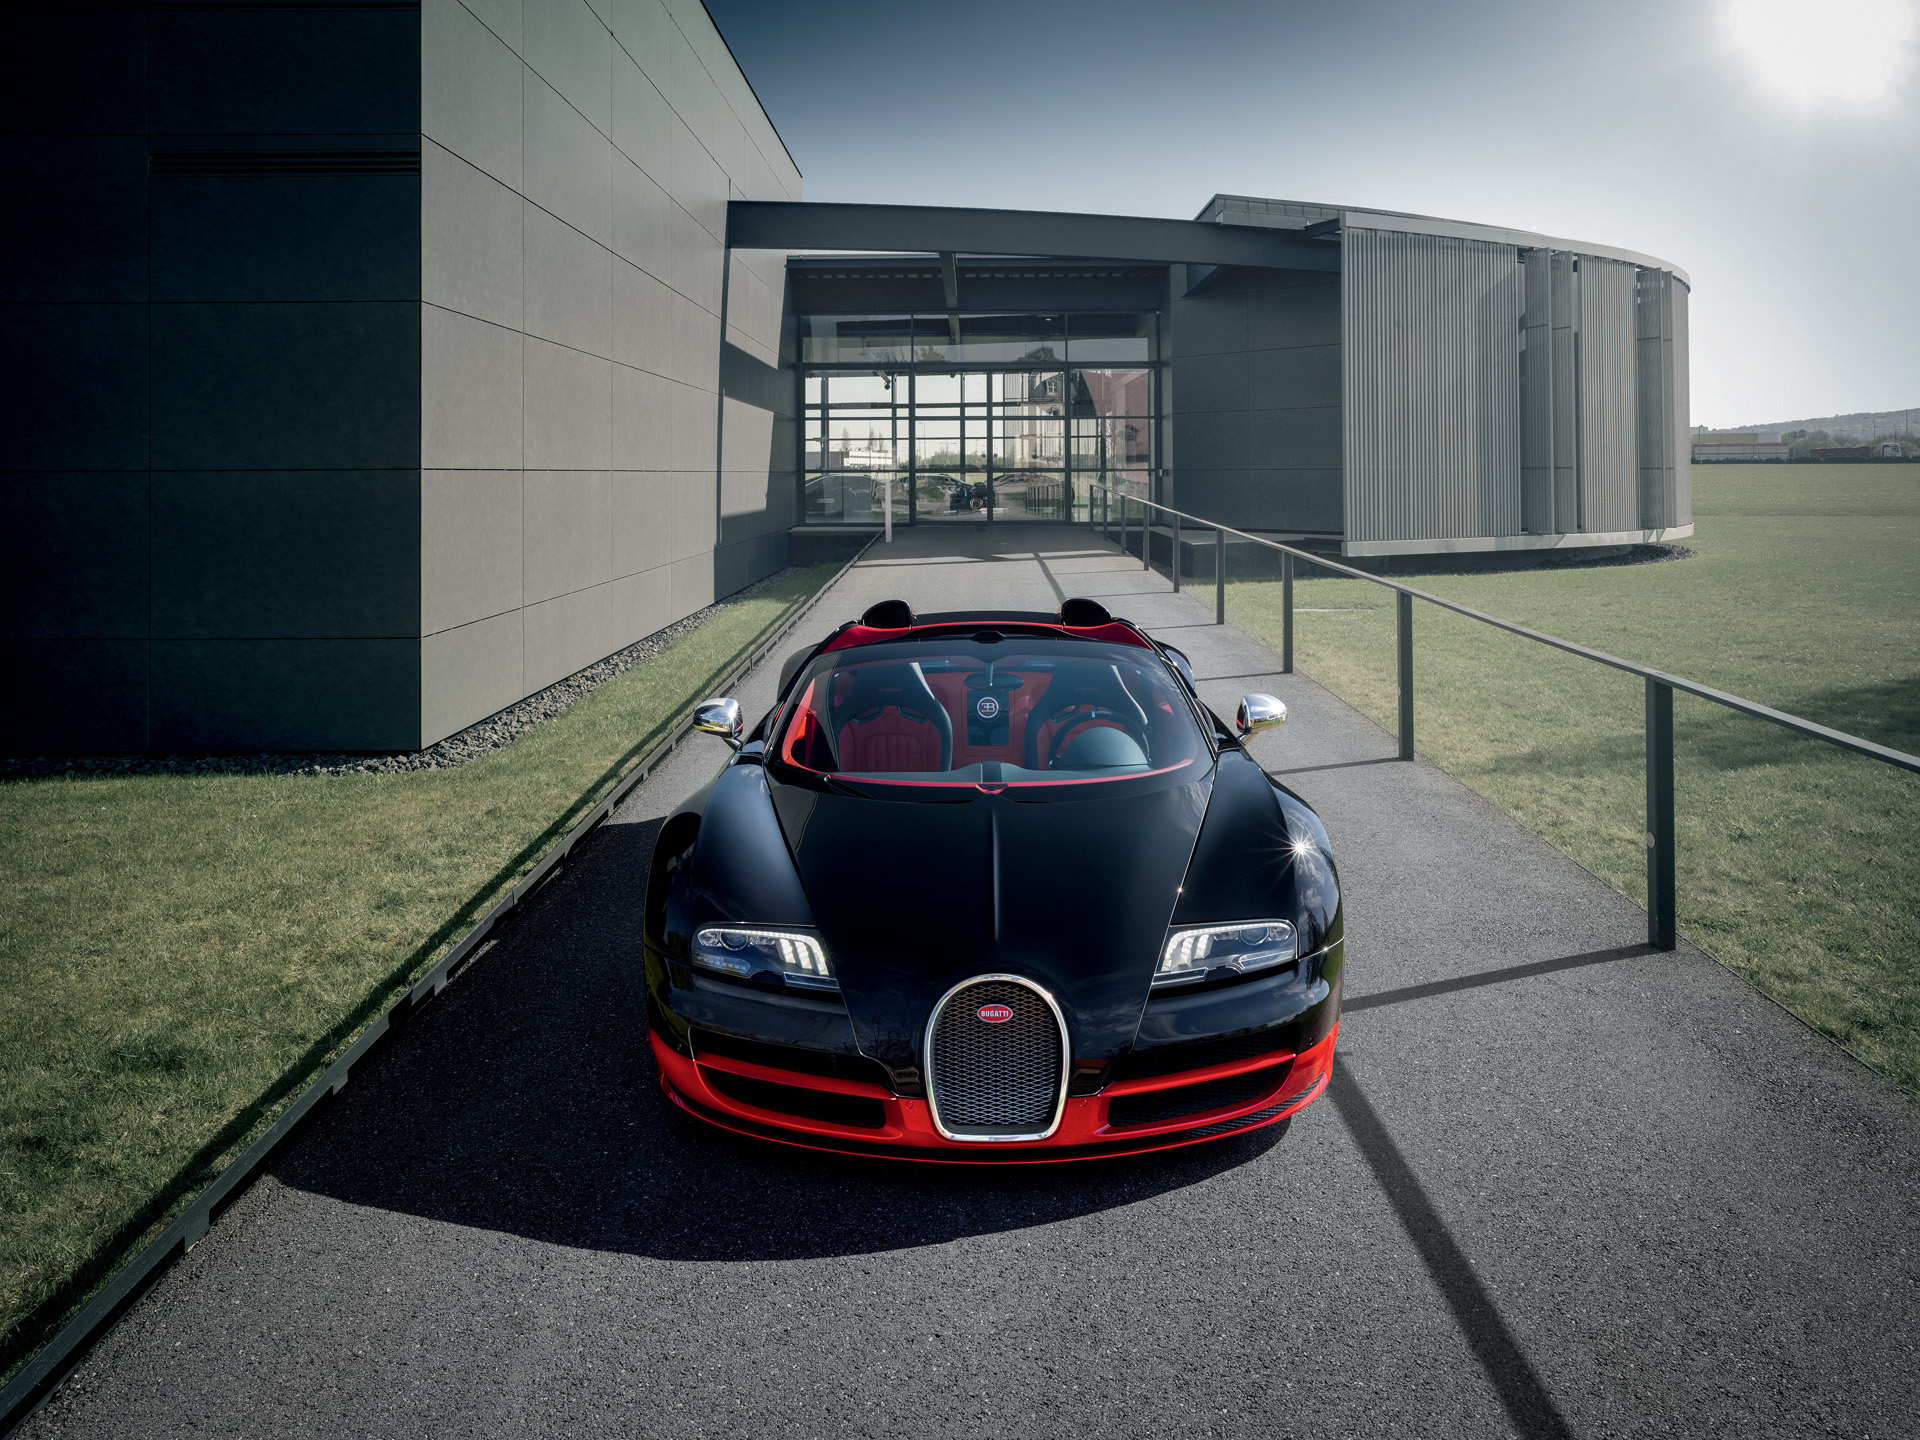 12-Bugatti-Veyron-Black-and-Red-01 Extraordinary Bugatti Veyron Grand Sport Vitesse Cars Trend